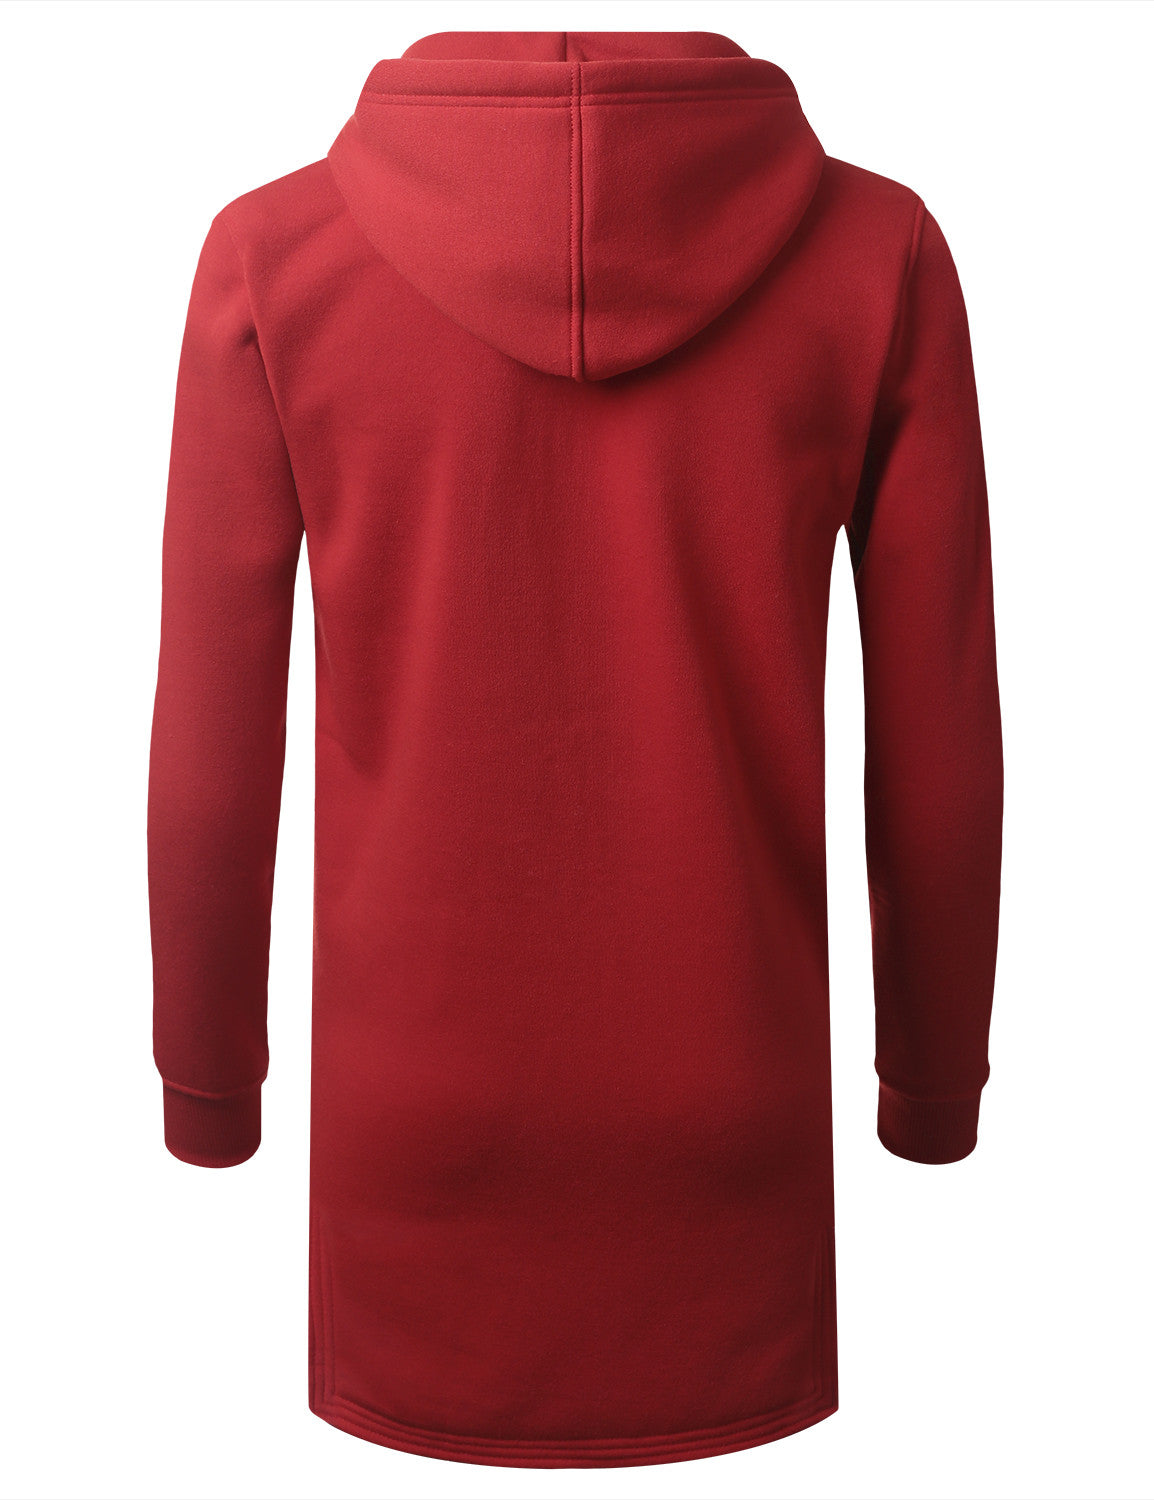 RED Zip Down Long Fleece Hoodie Jacket - URBANCREWS